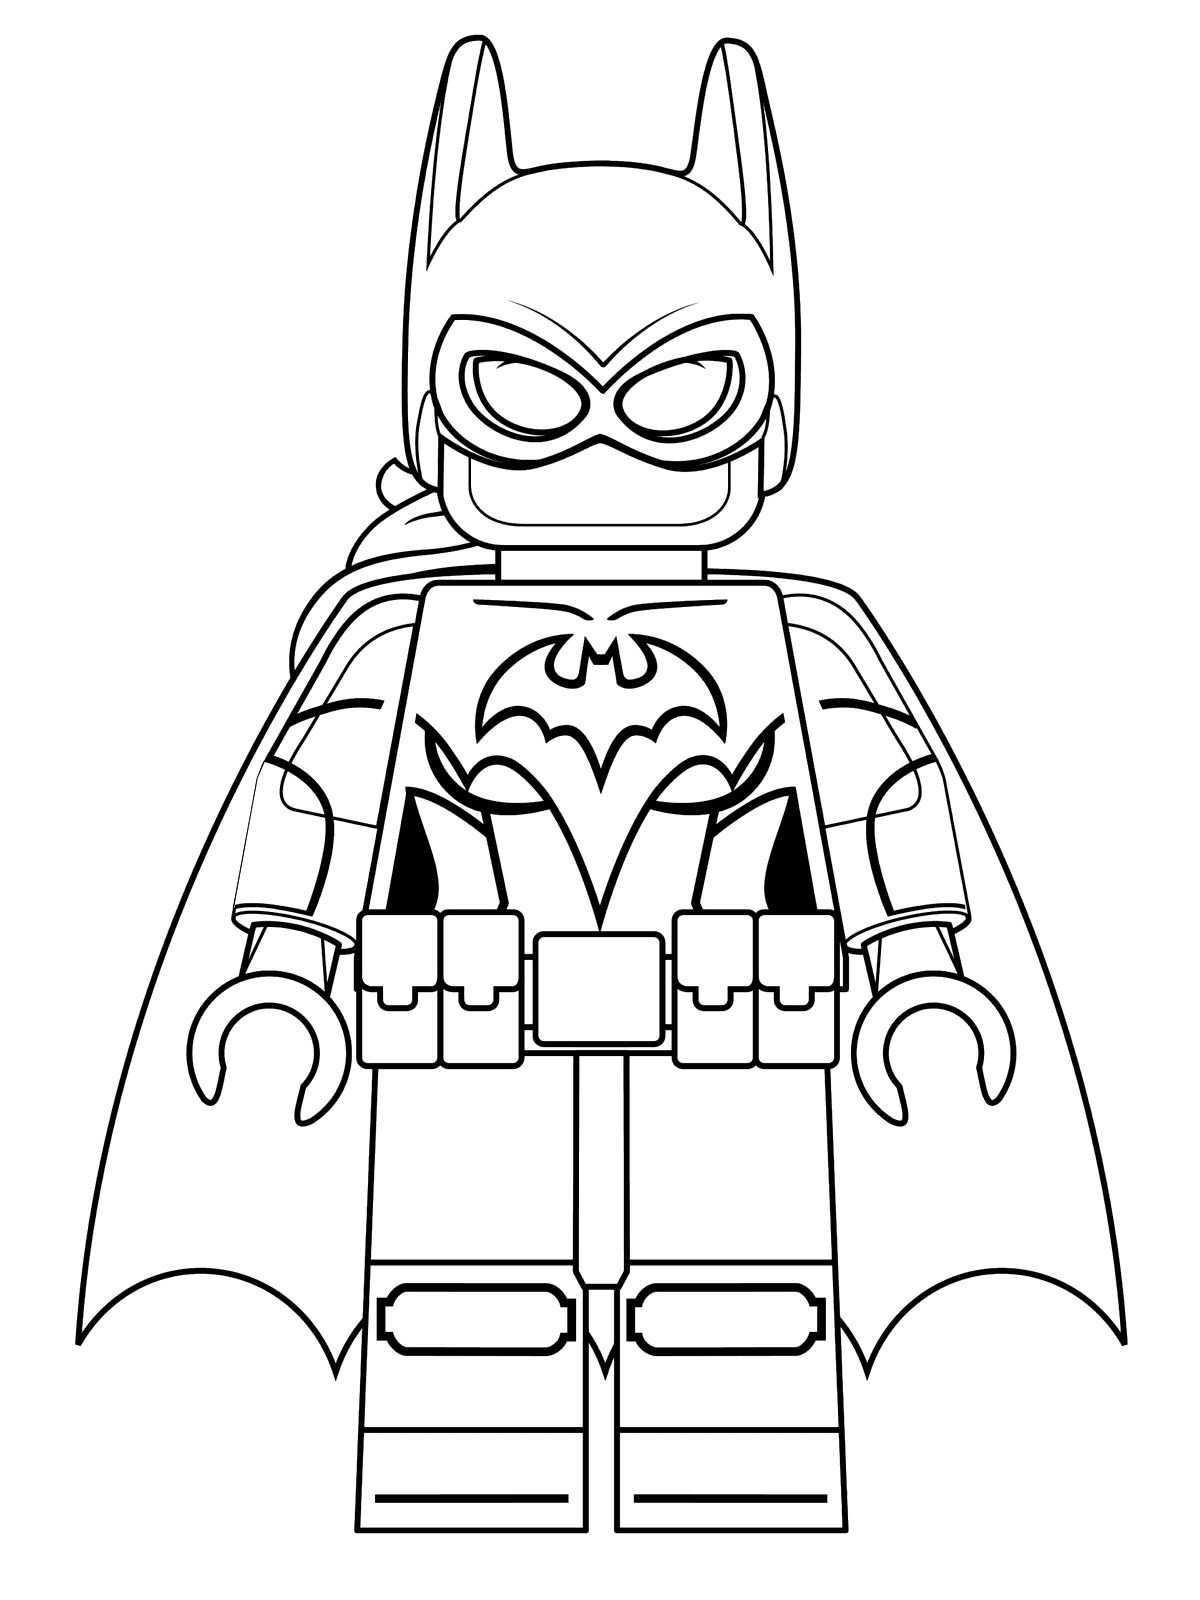 Print Free Lego Batman Coloring Pages